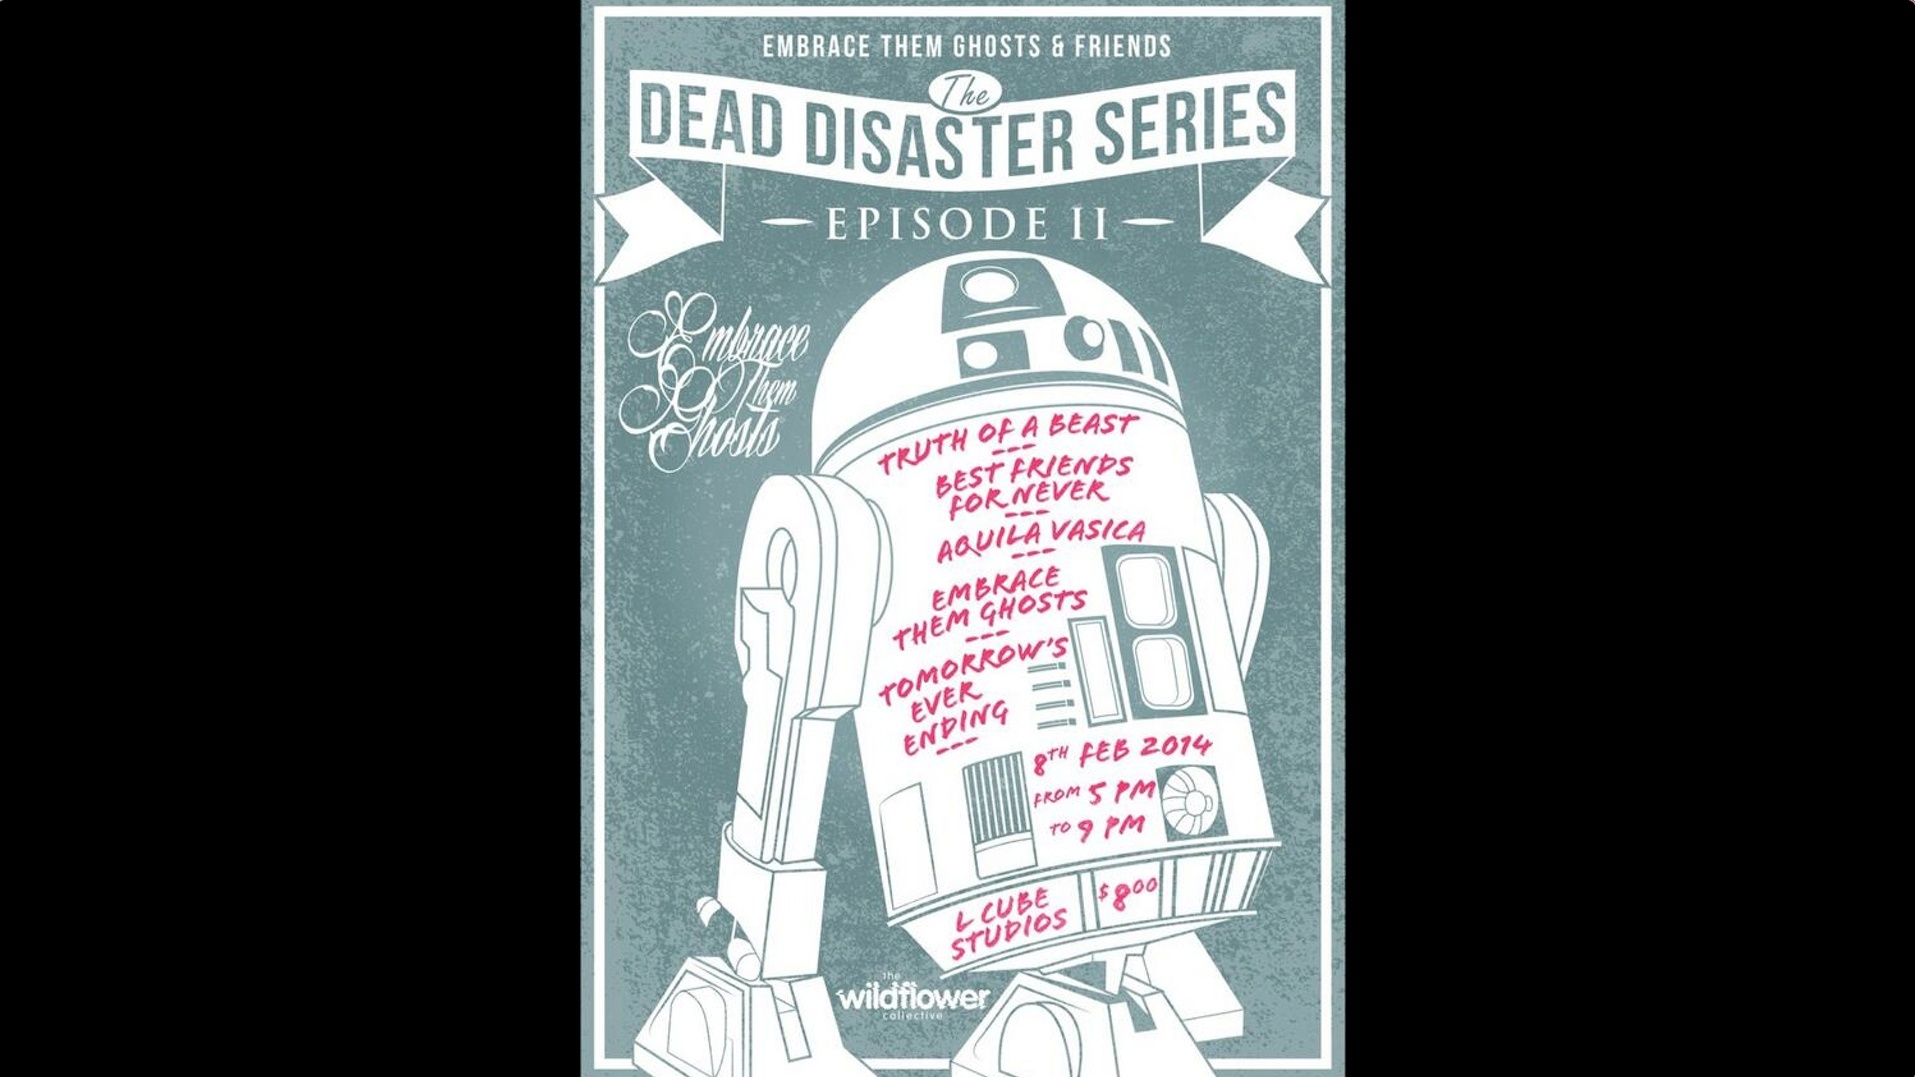 The Dead Disaster: Episode II